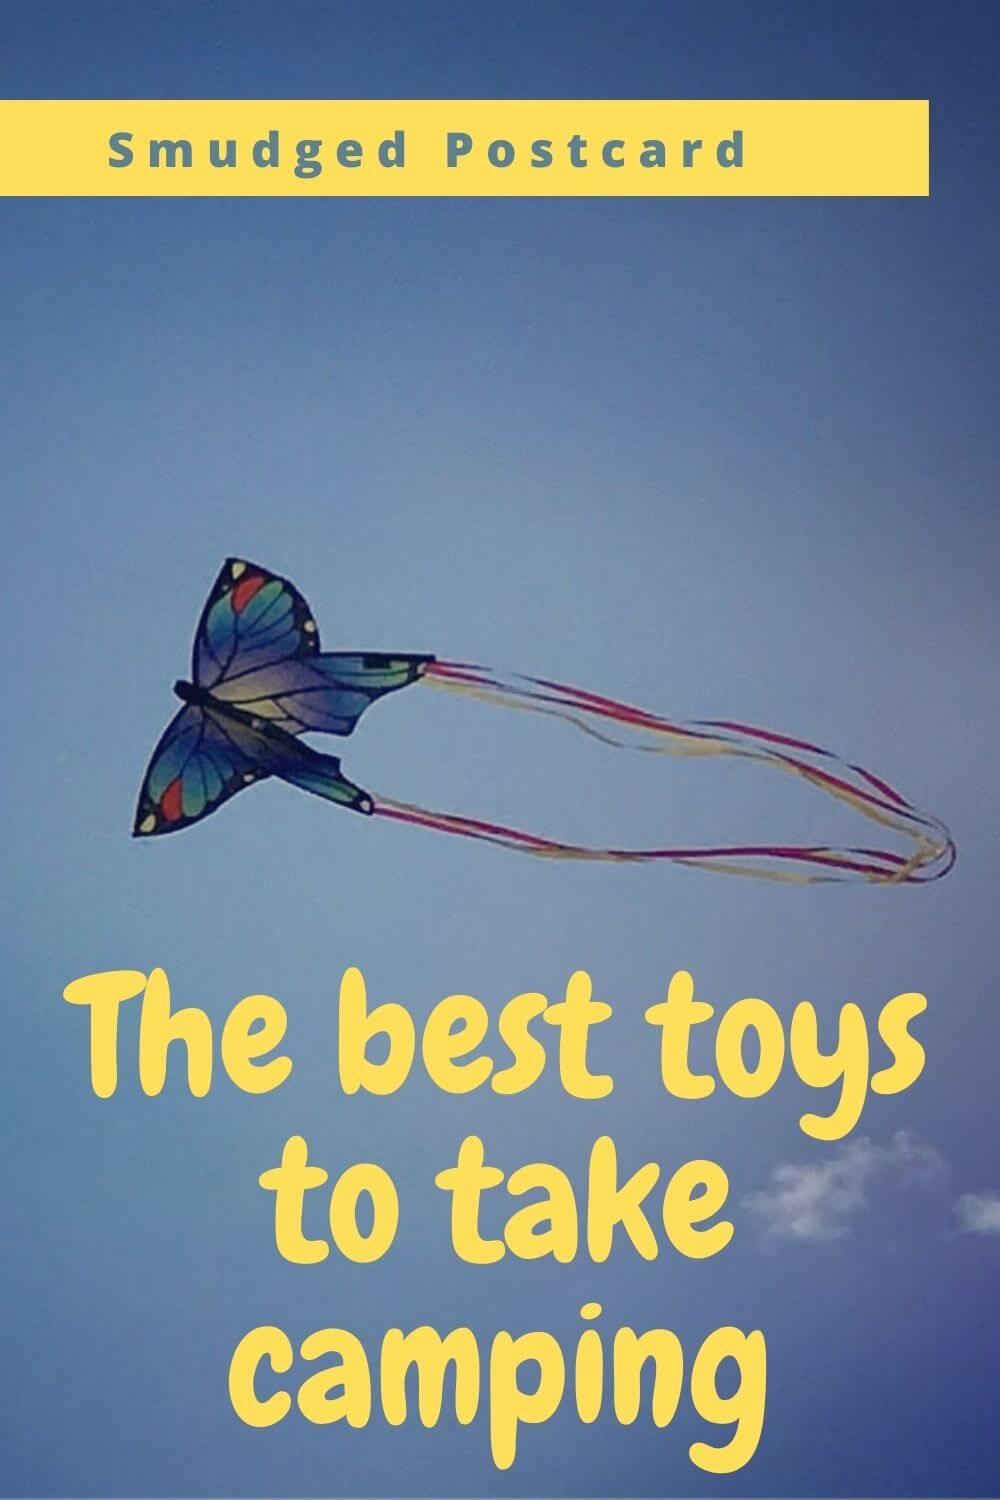 The best camping toys for kids